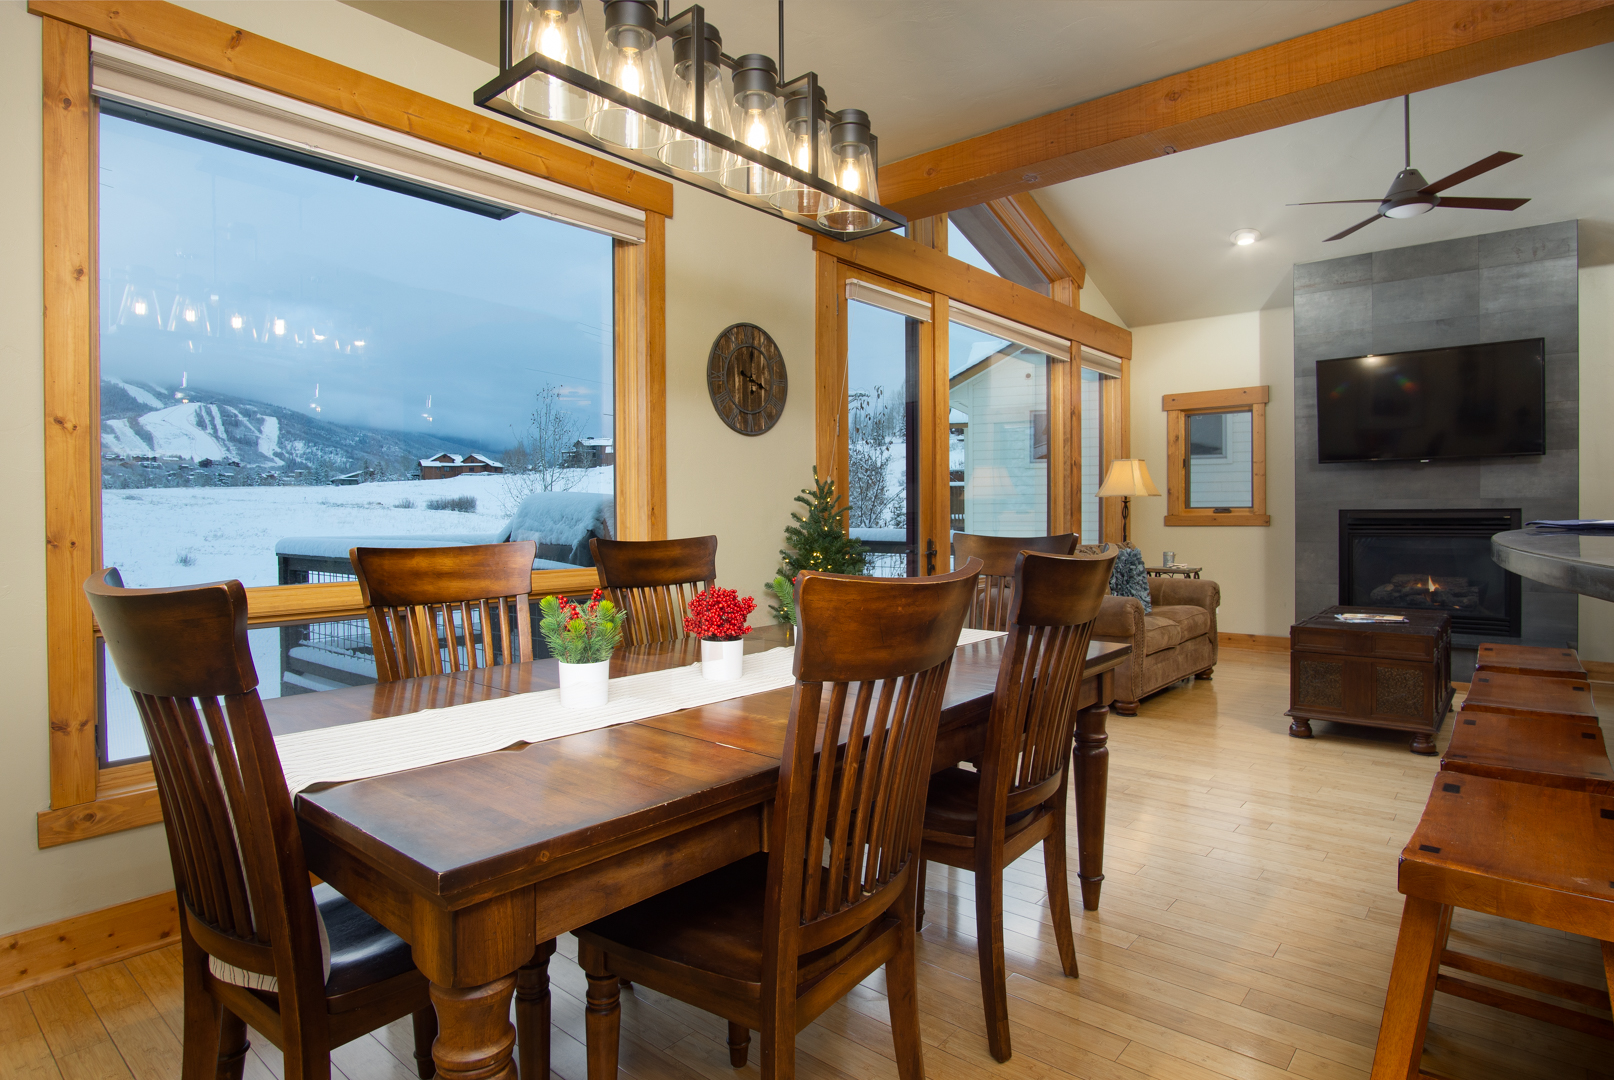 Dining room with killer views!